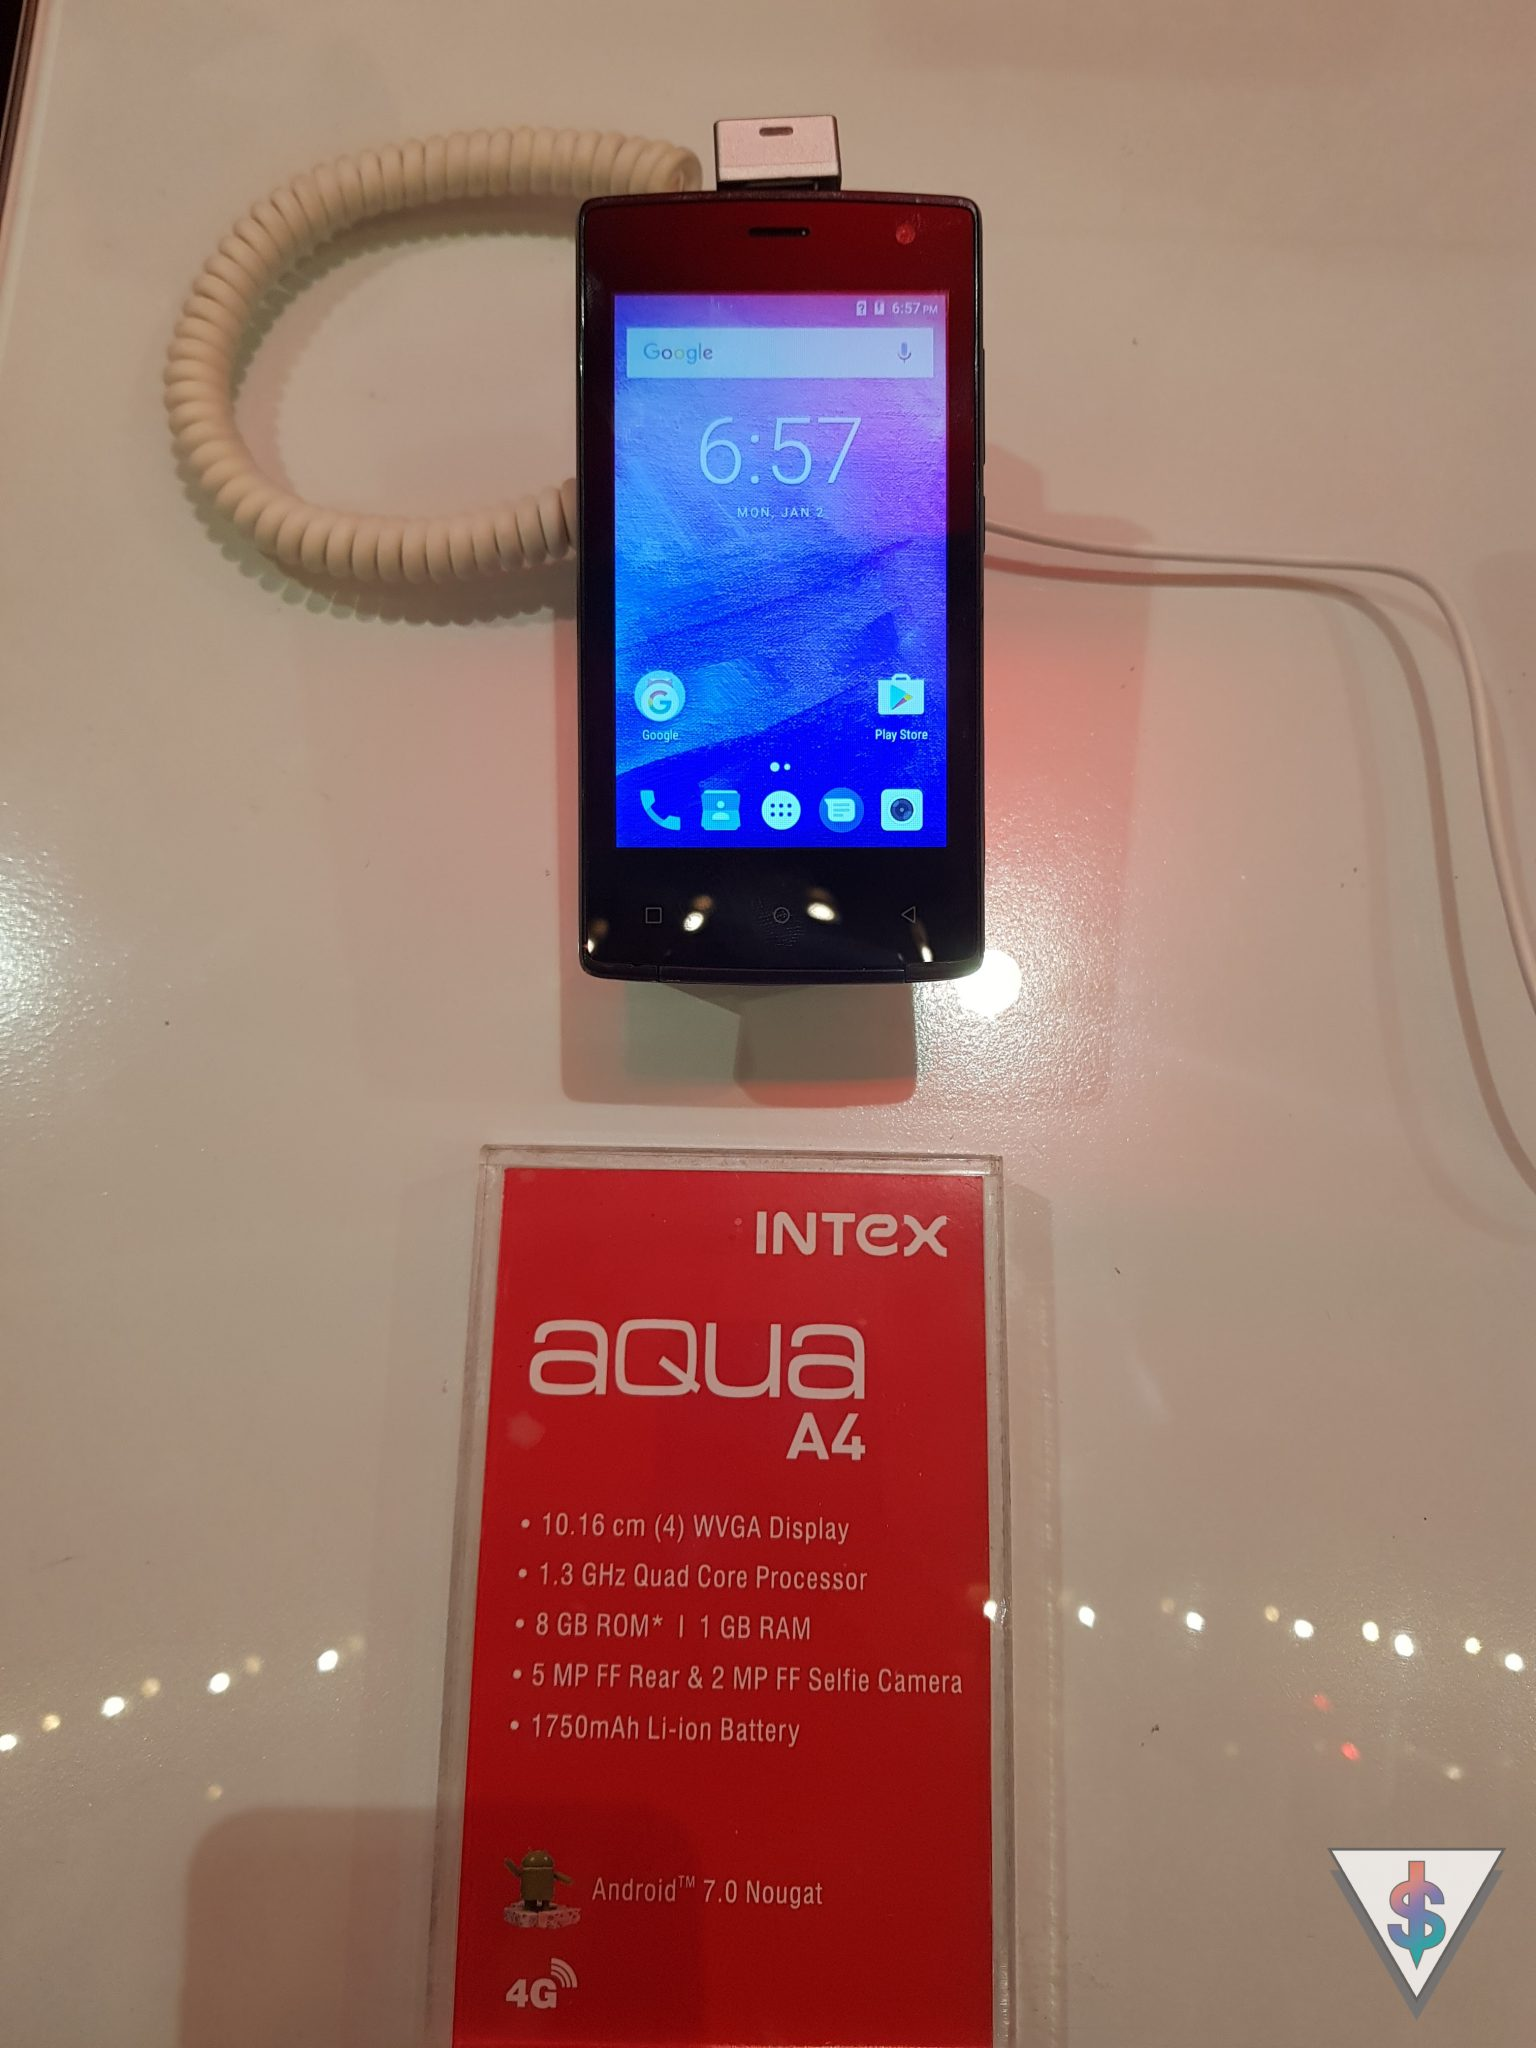 Intex AndroDollar 15 - Intex partners with Softlogic to unveil the Aqua A4, Aqua Lions 4G and more budget oriented devices in Sri Lanka